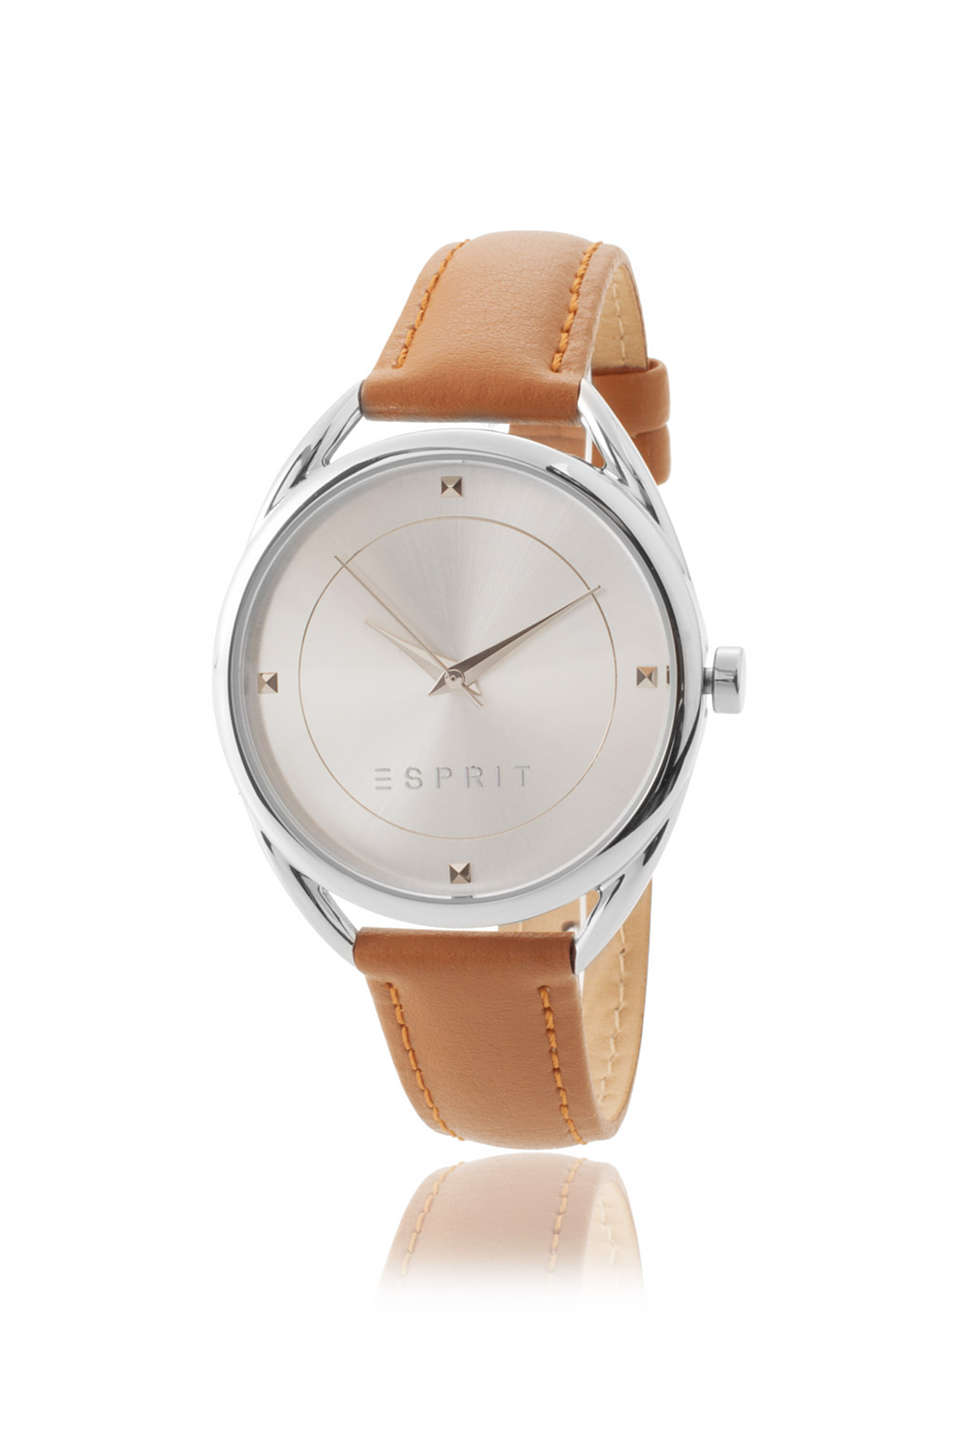 polished stainless steel watch case, light brown strap, pale dial, Ø approx. 38 mm